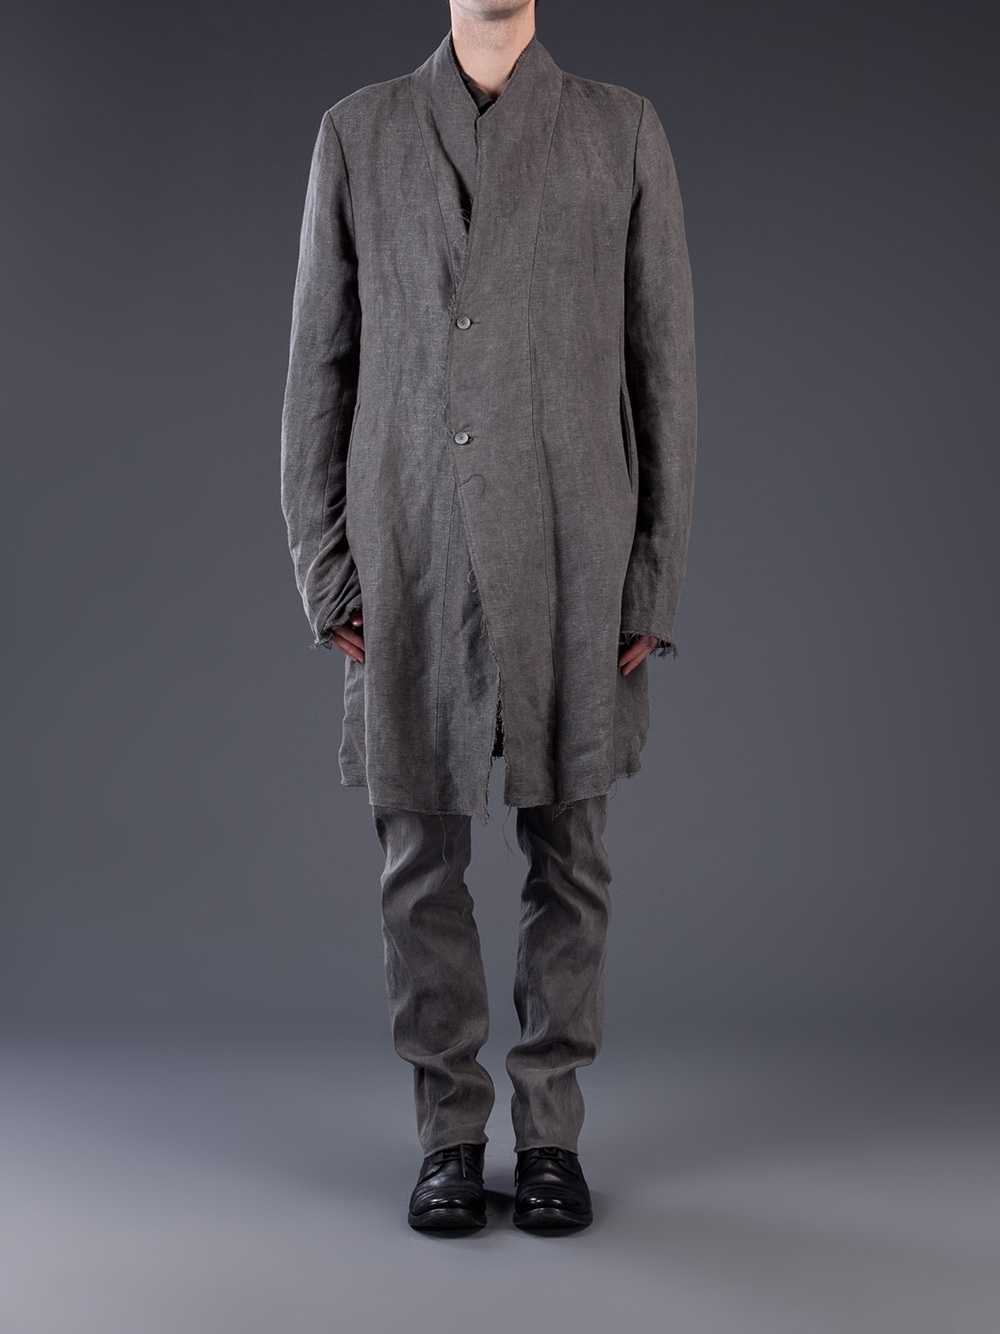 Lyst Poeme Bohemien Frayed Midlength Coat In Gray For Men